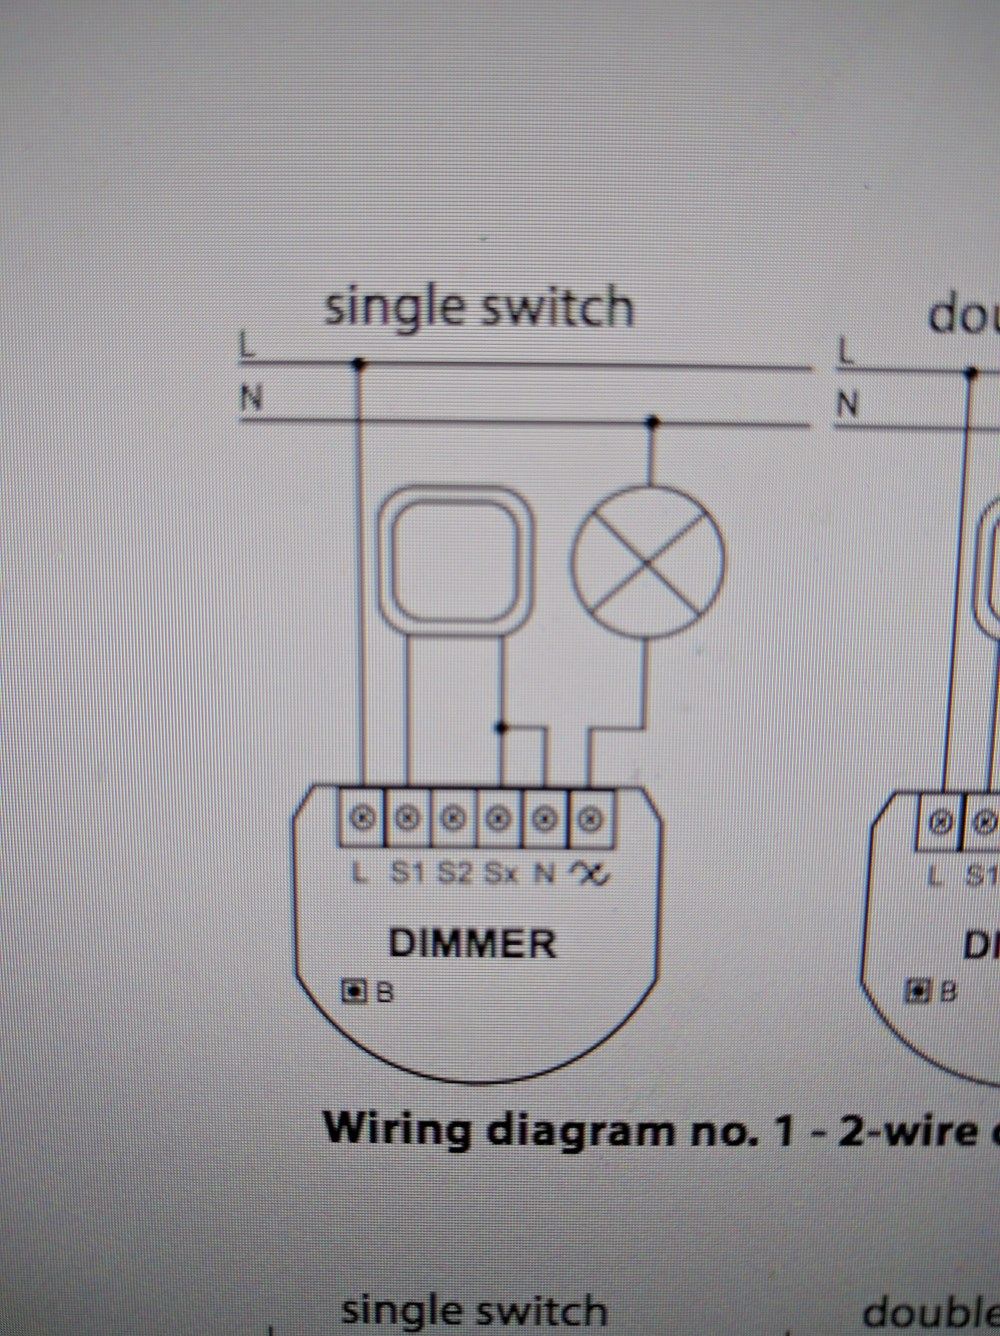 medium resolution of as previously stated i live in an older house that only had 2 wires in the light box the line and load no neutral like you would see in a newer home